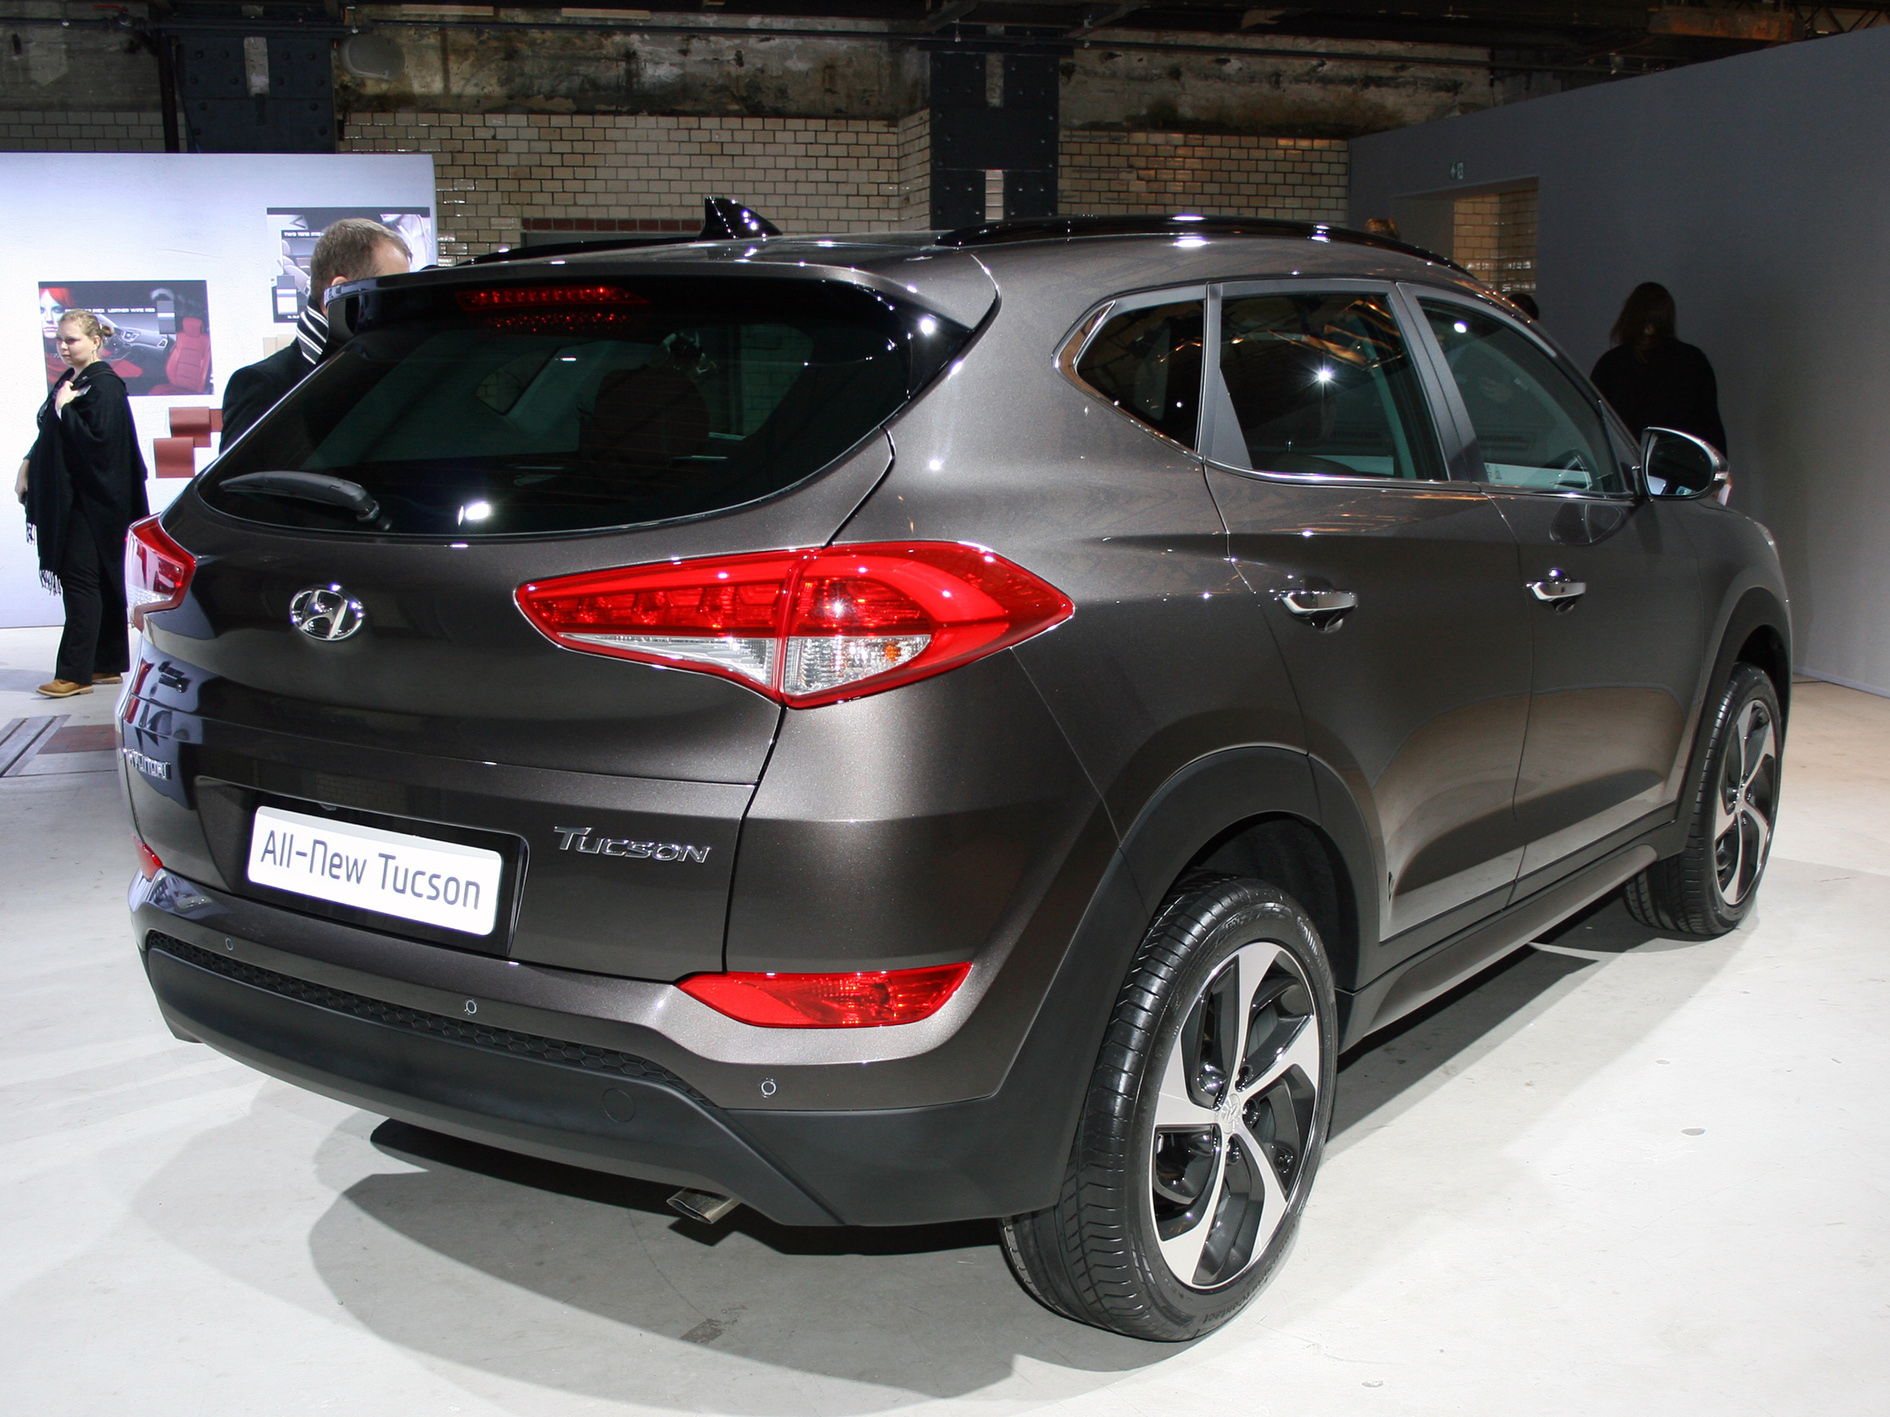 World Premiere: Hyundai Tucson 2015 in Berlin